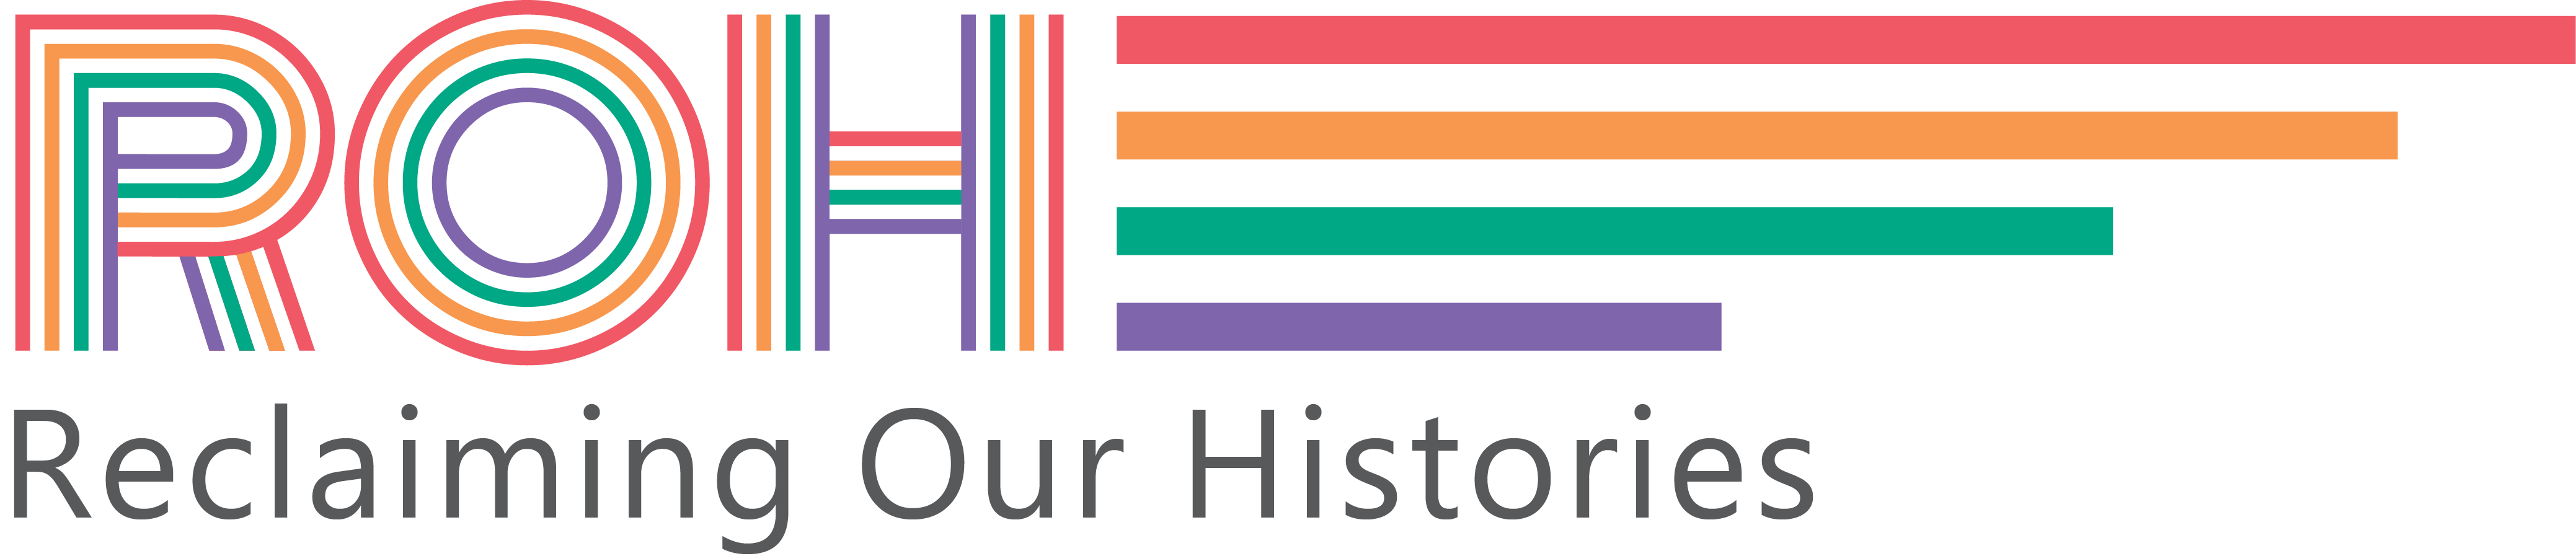 Reclaiming Our Histories